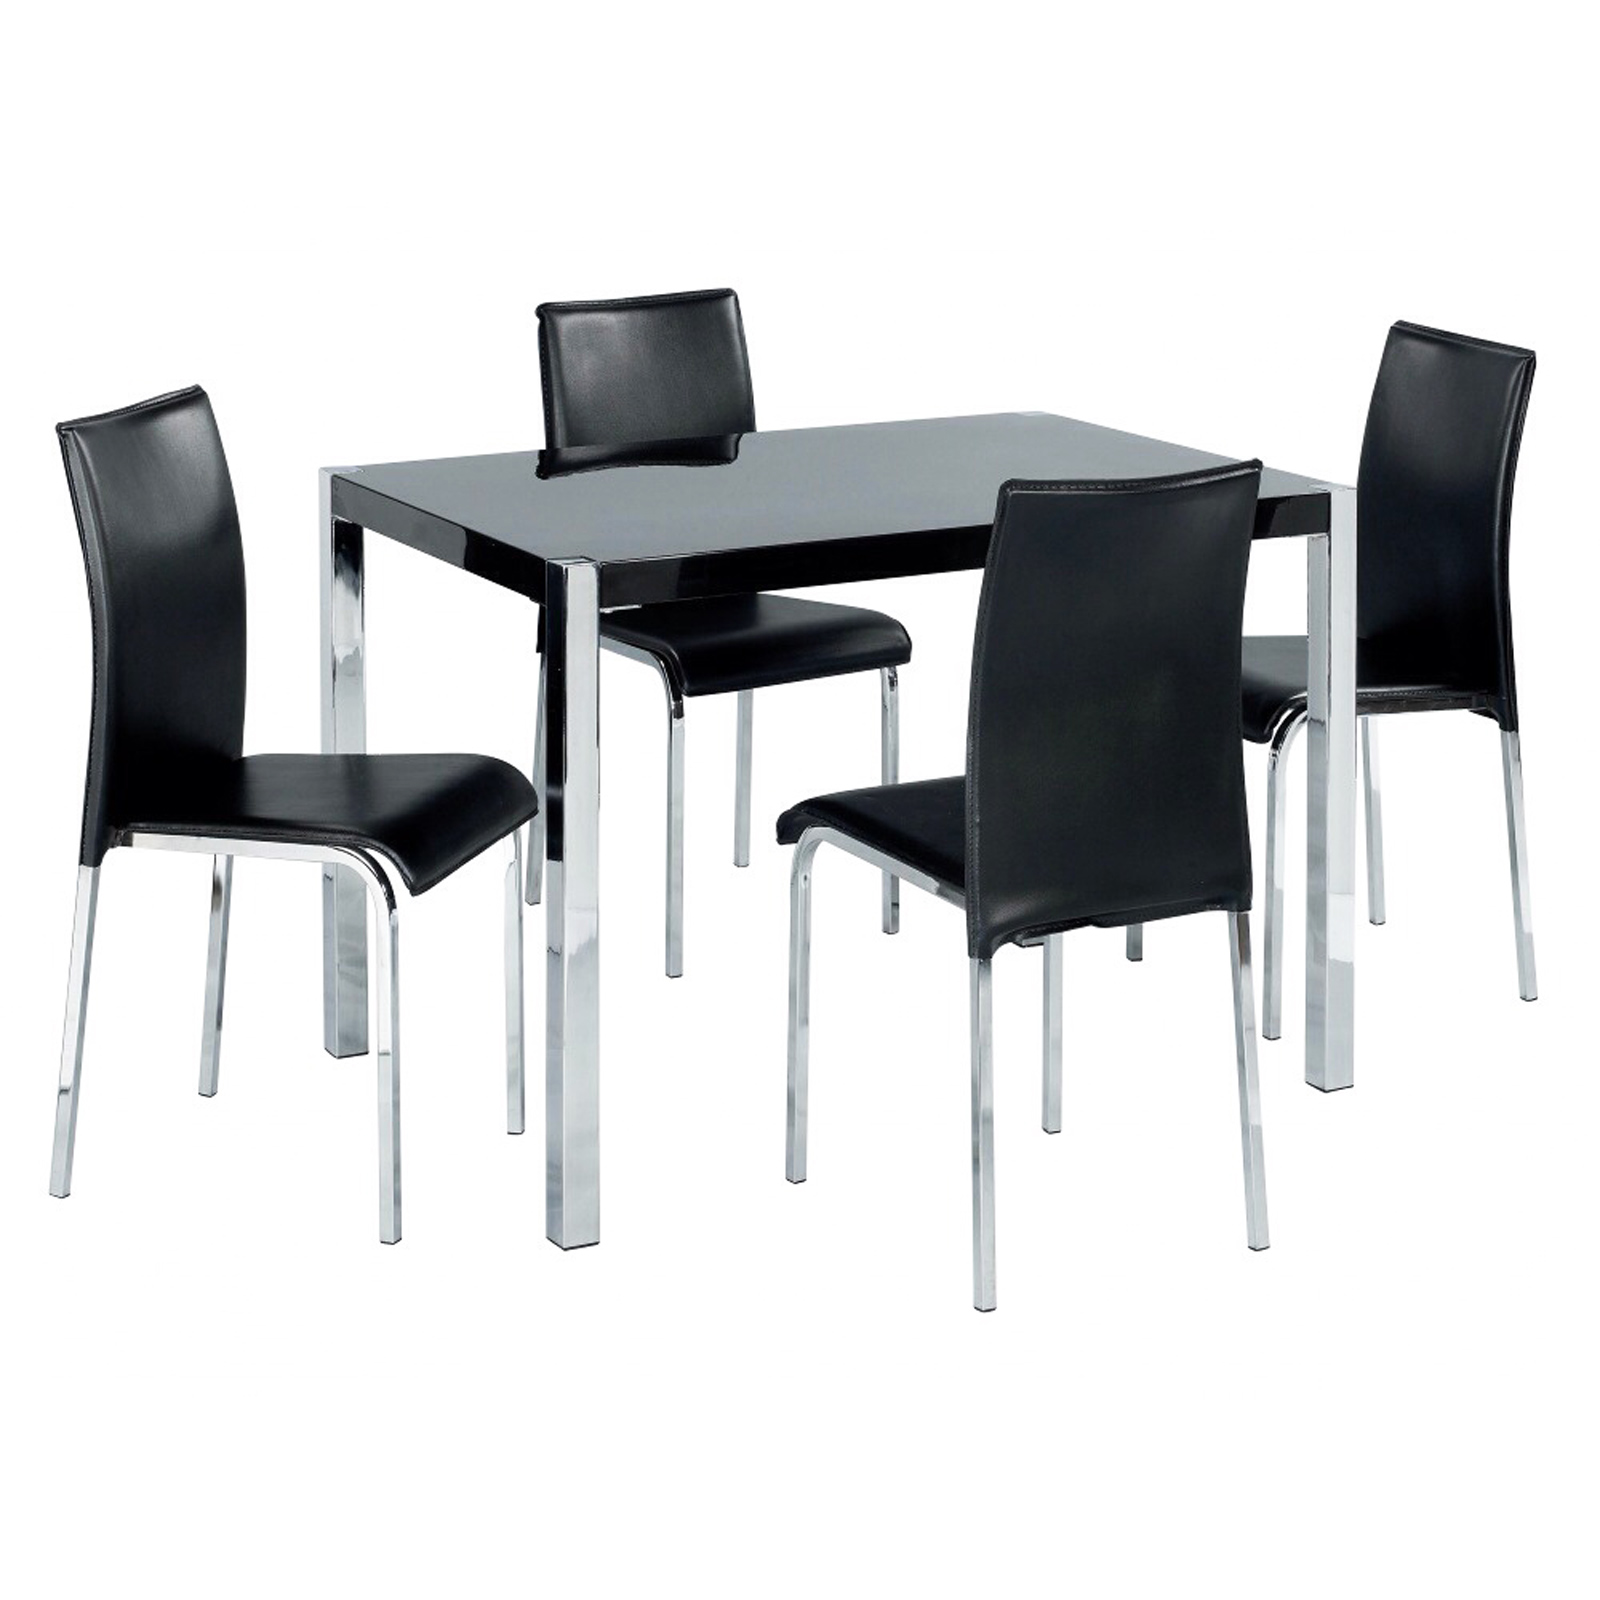 hygena black gloss stylish modern wooden kitchen dining table 120cm